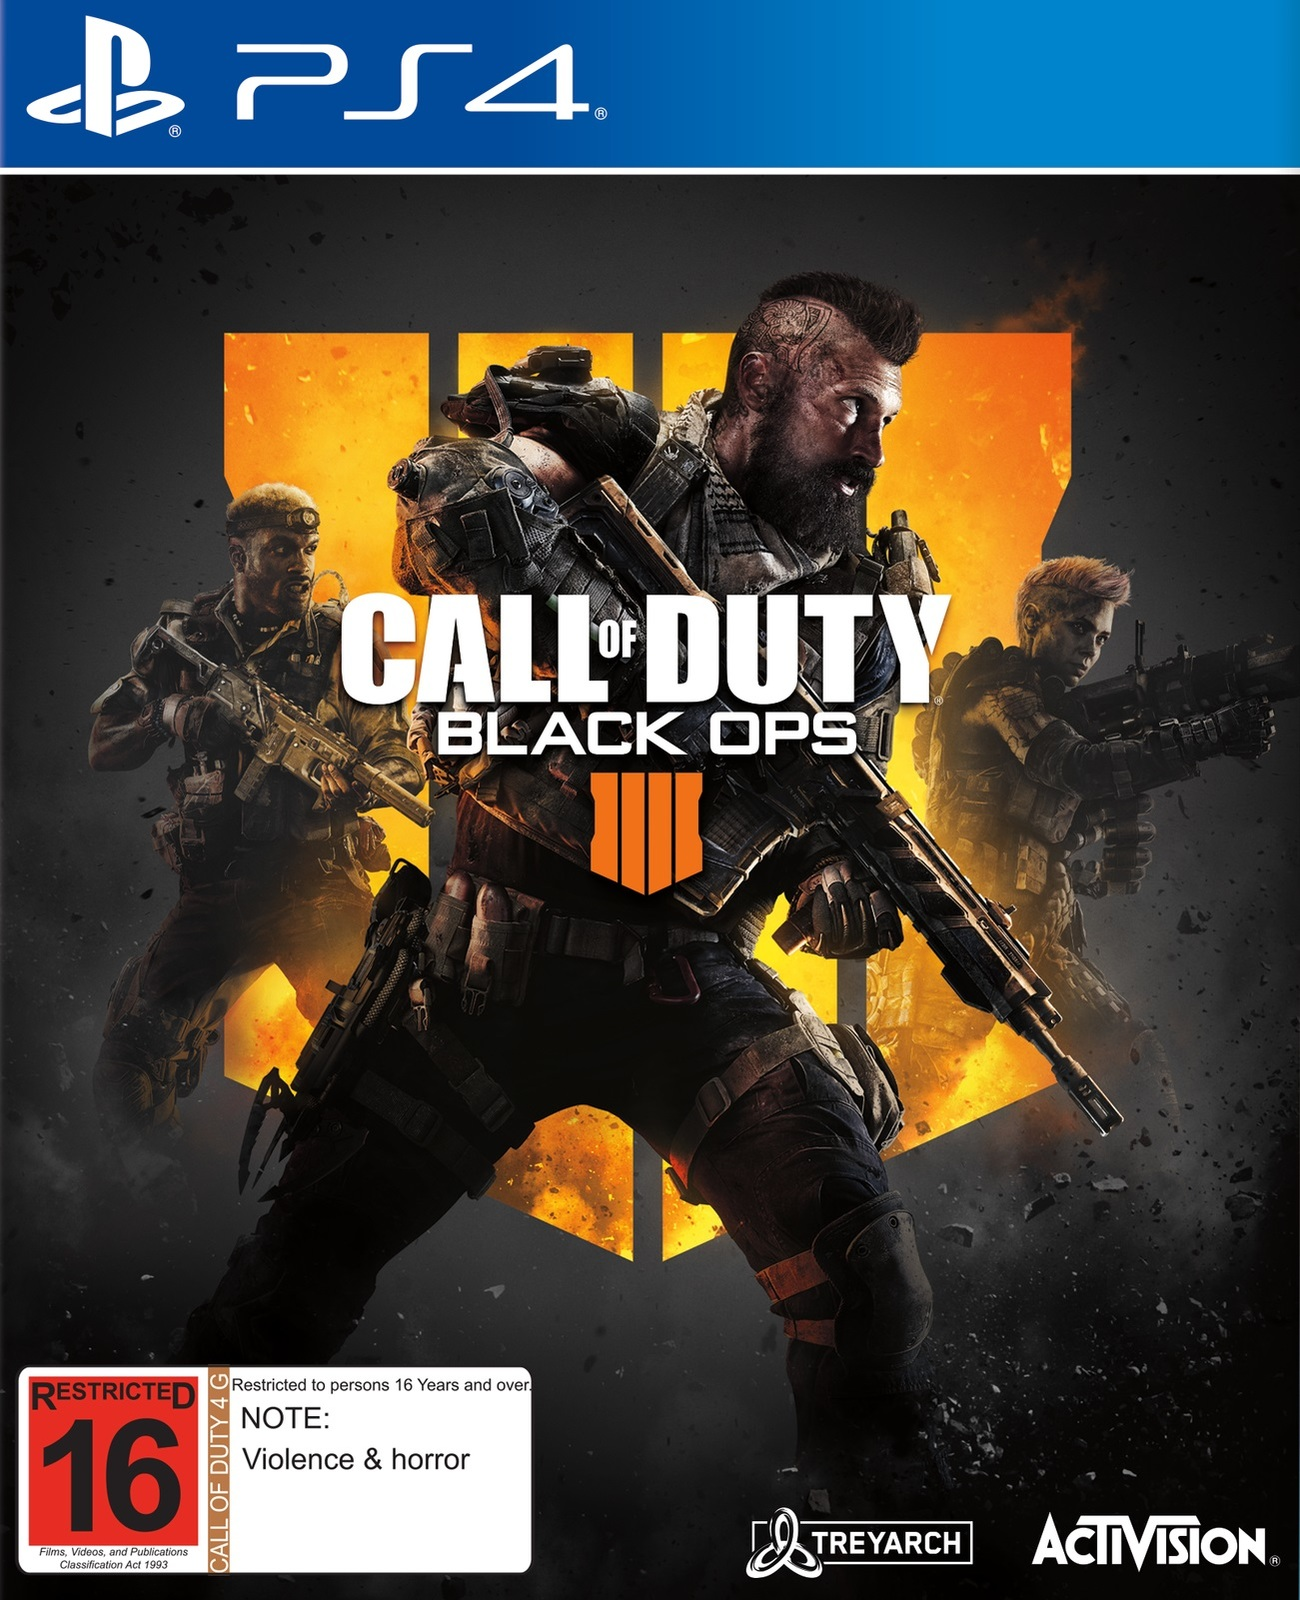 Call of duty black ops iiii for ps4 image